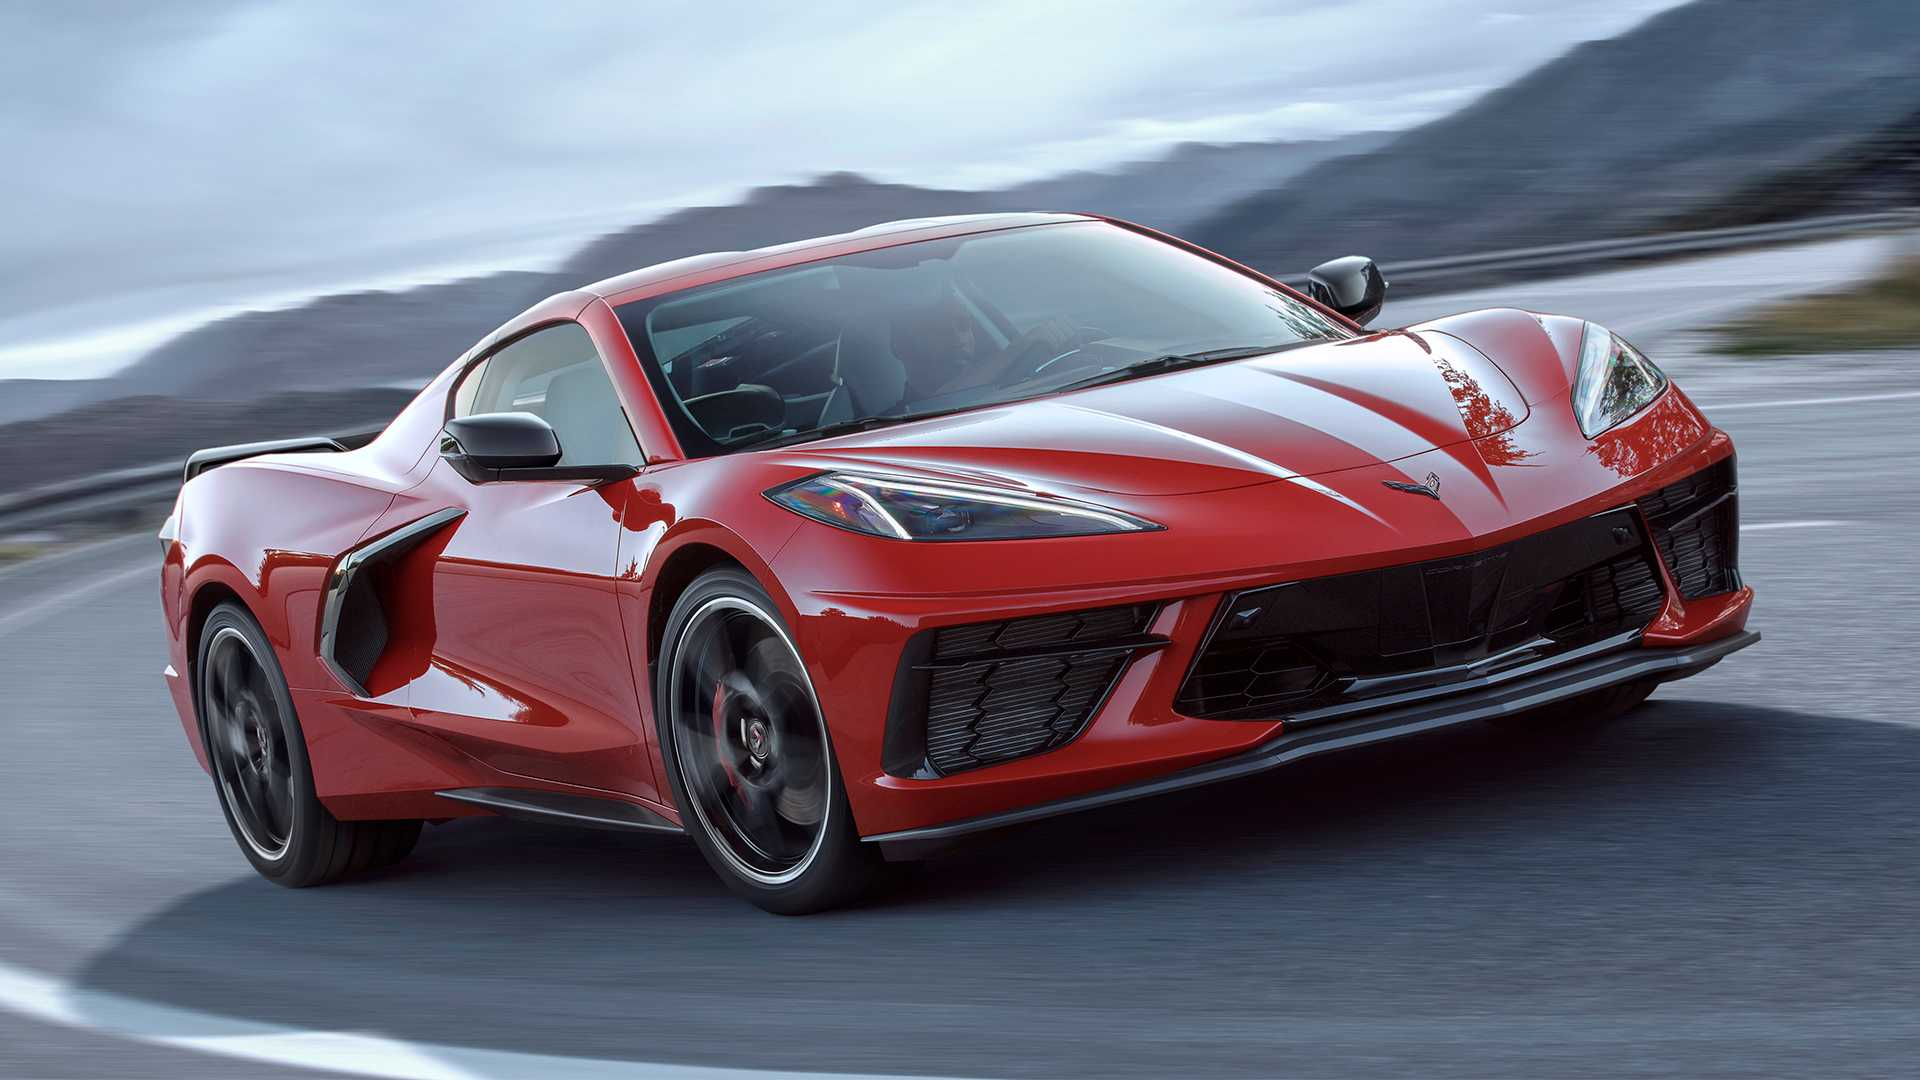 2020 Chevy Corvette Options List: What Everything Costs 2021 Chevrolet Corvette Stingray Build And Price, Lease, Build